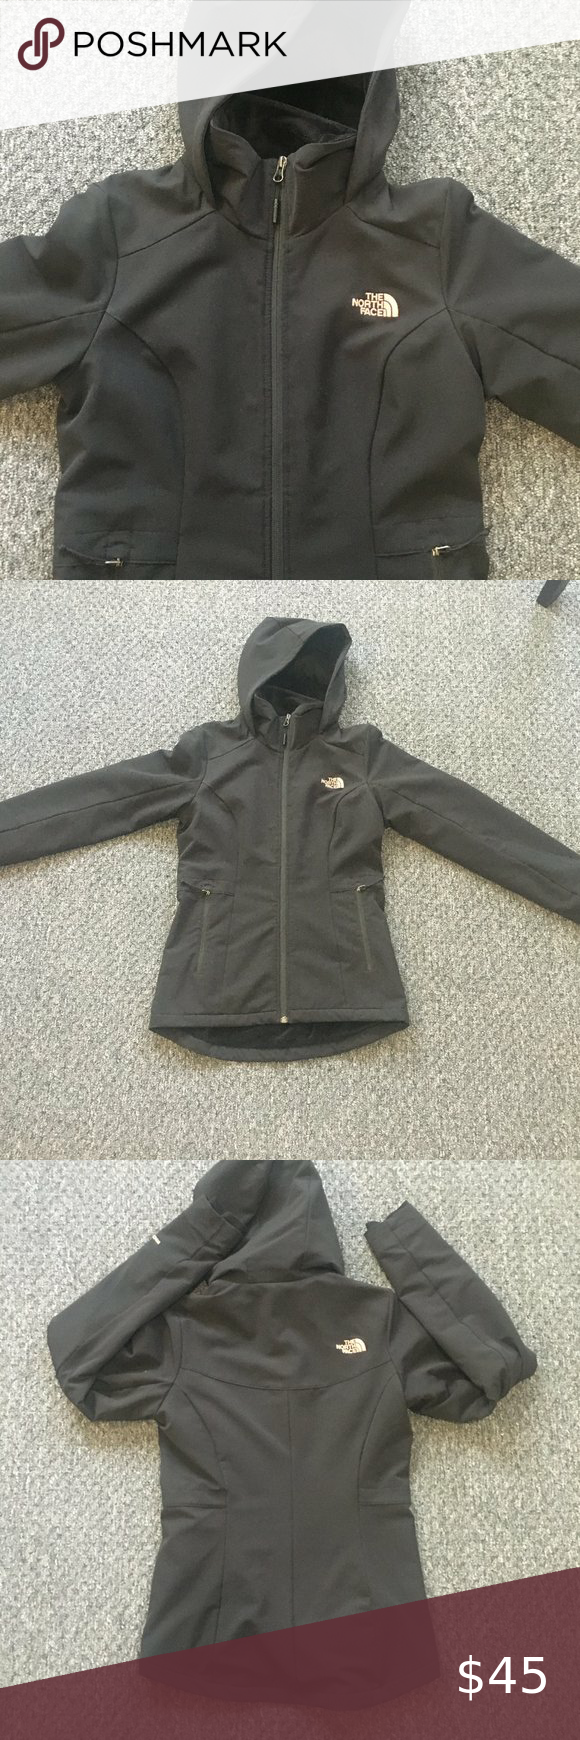 North Face Black Jacket W Rose Gold Accents In 2020 Black North Face Jacket Black North Face Black Jacket [ 1740 x 580 Pixel ]